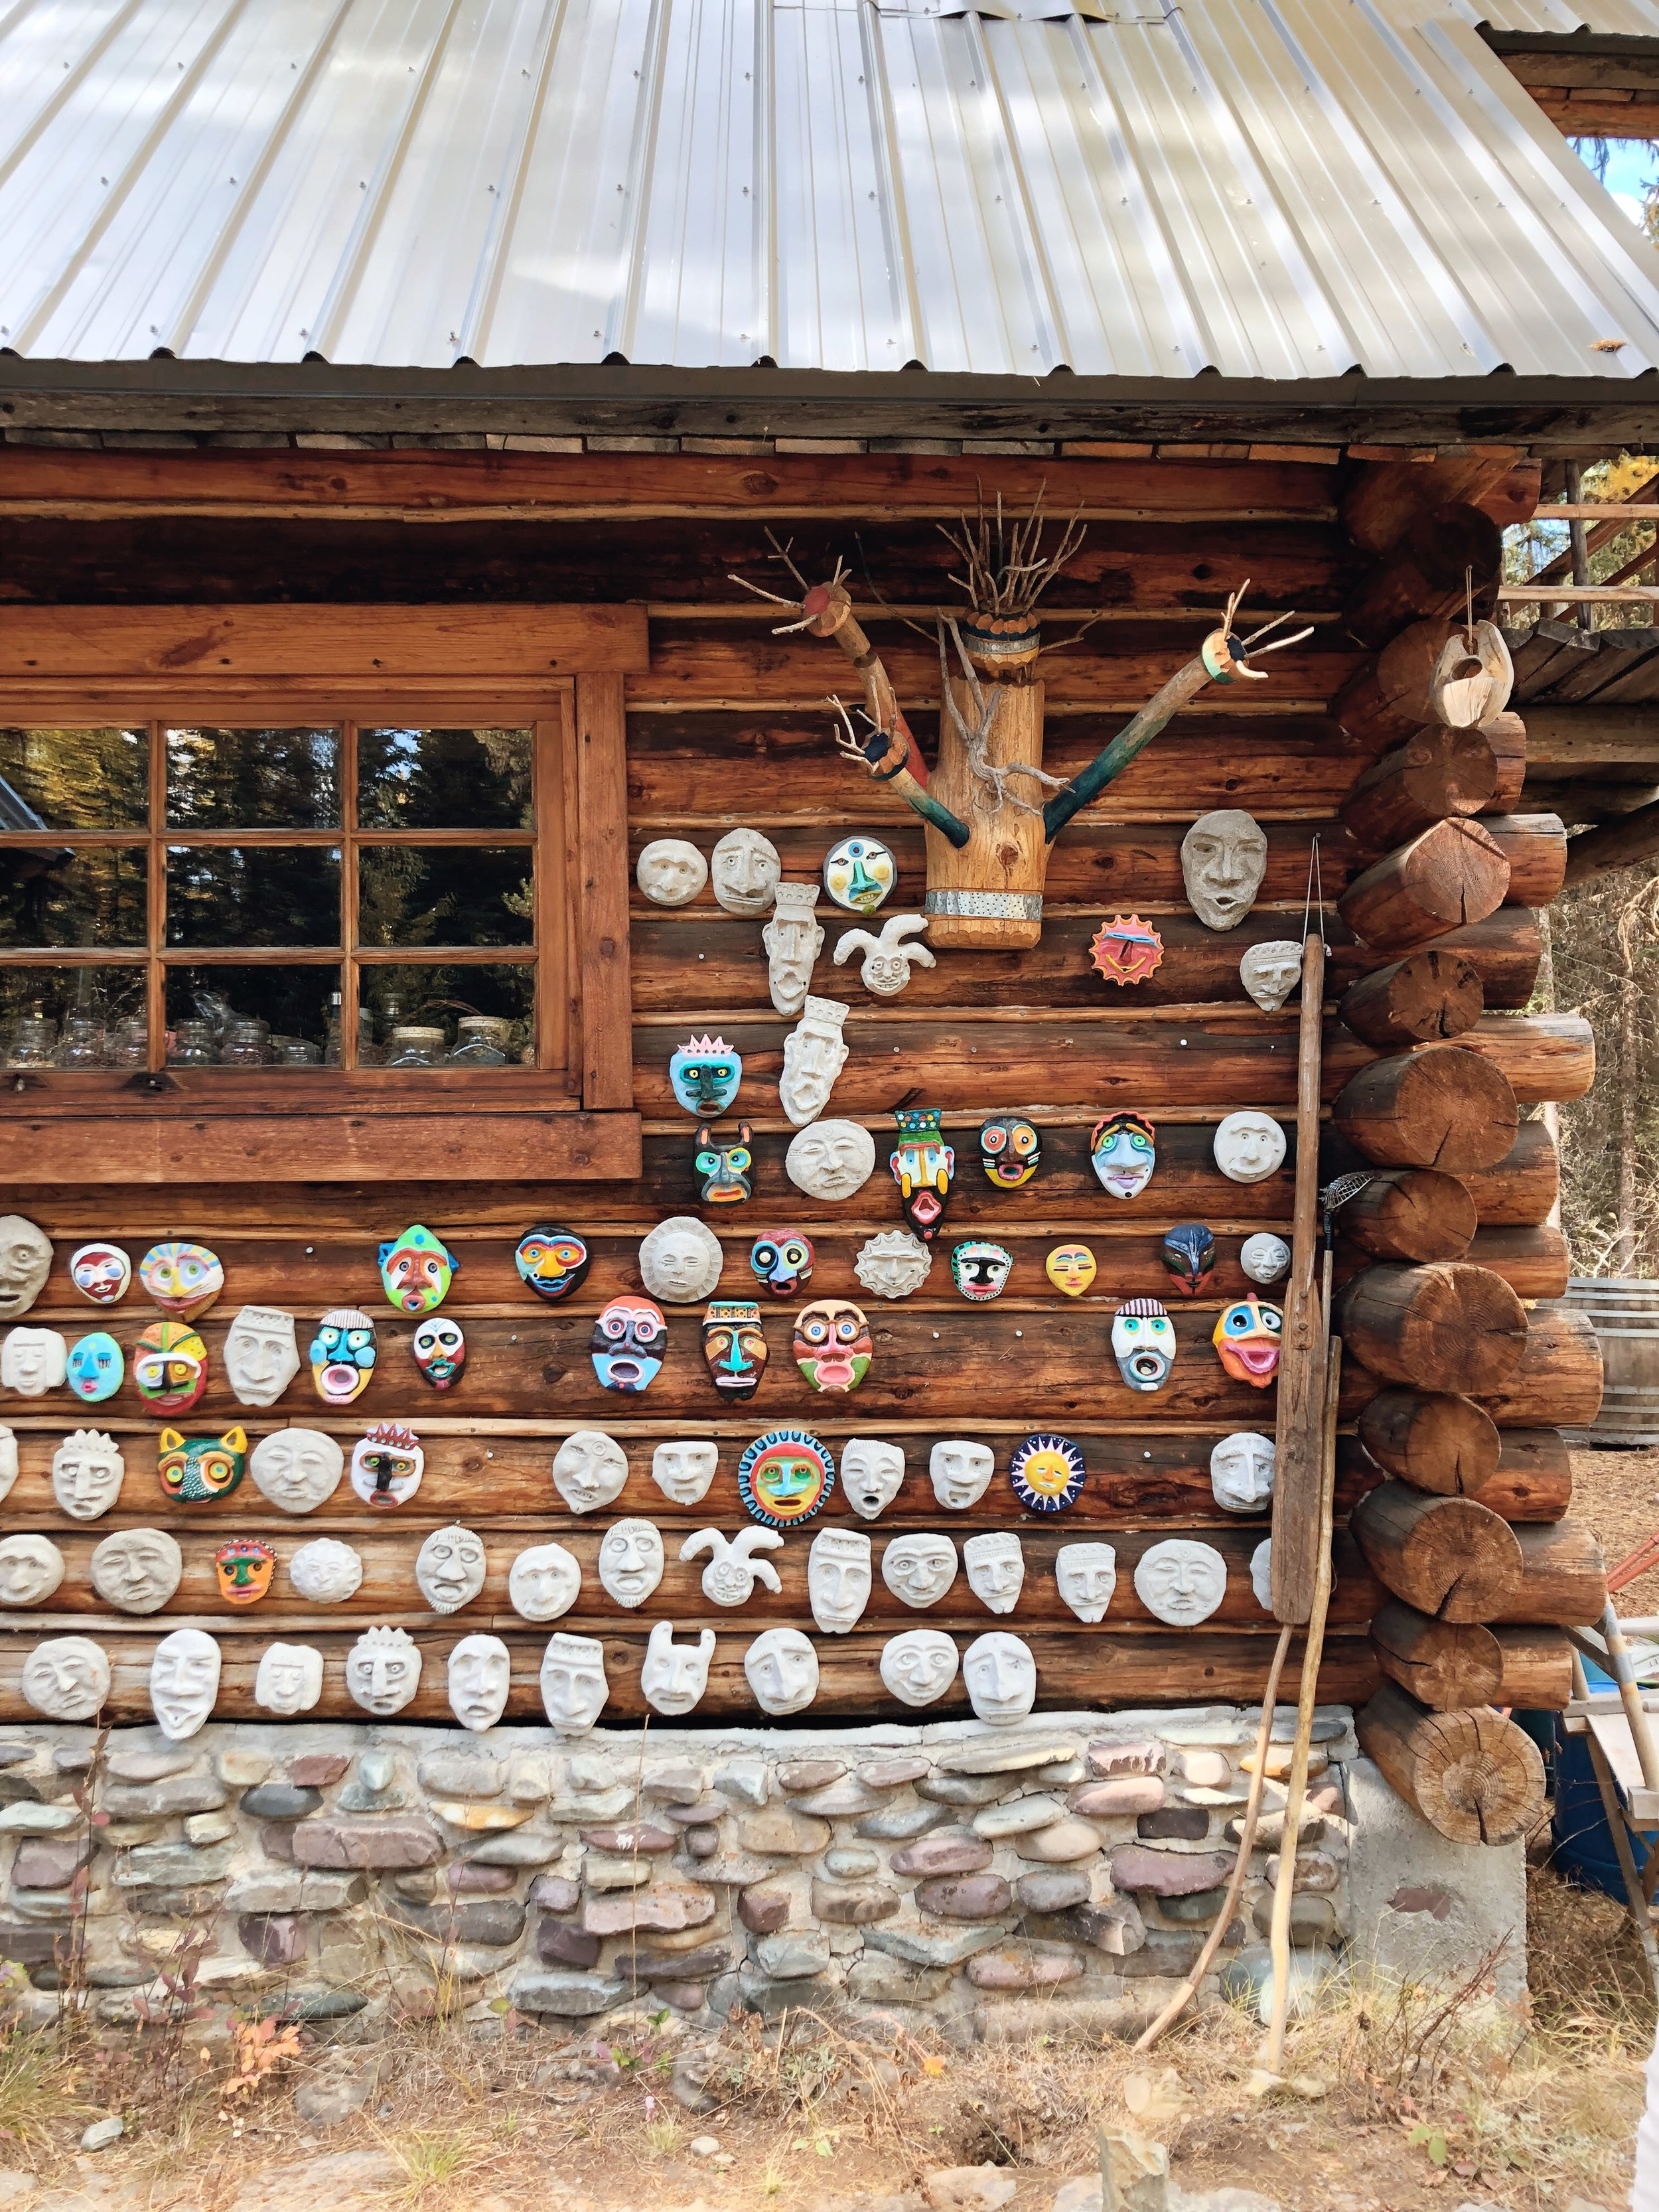 Painted clay masks, made by Peter, are nailed to the log exterior of his home, studio, and gallery.